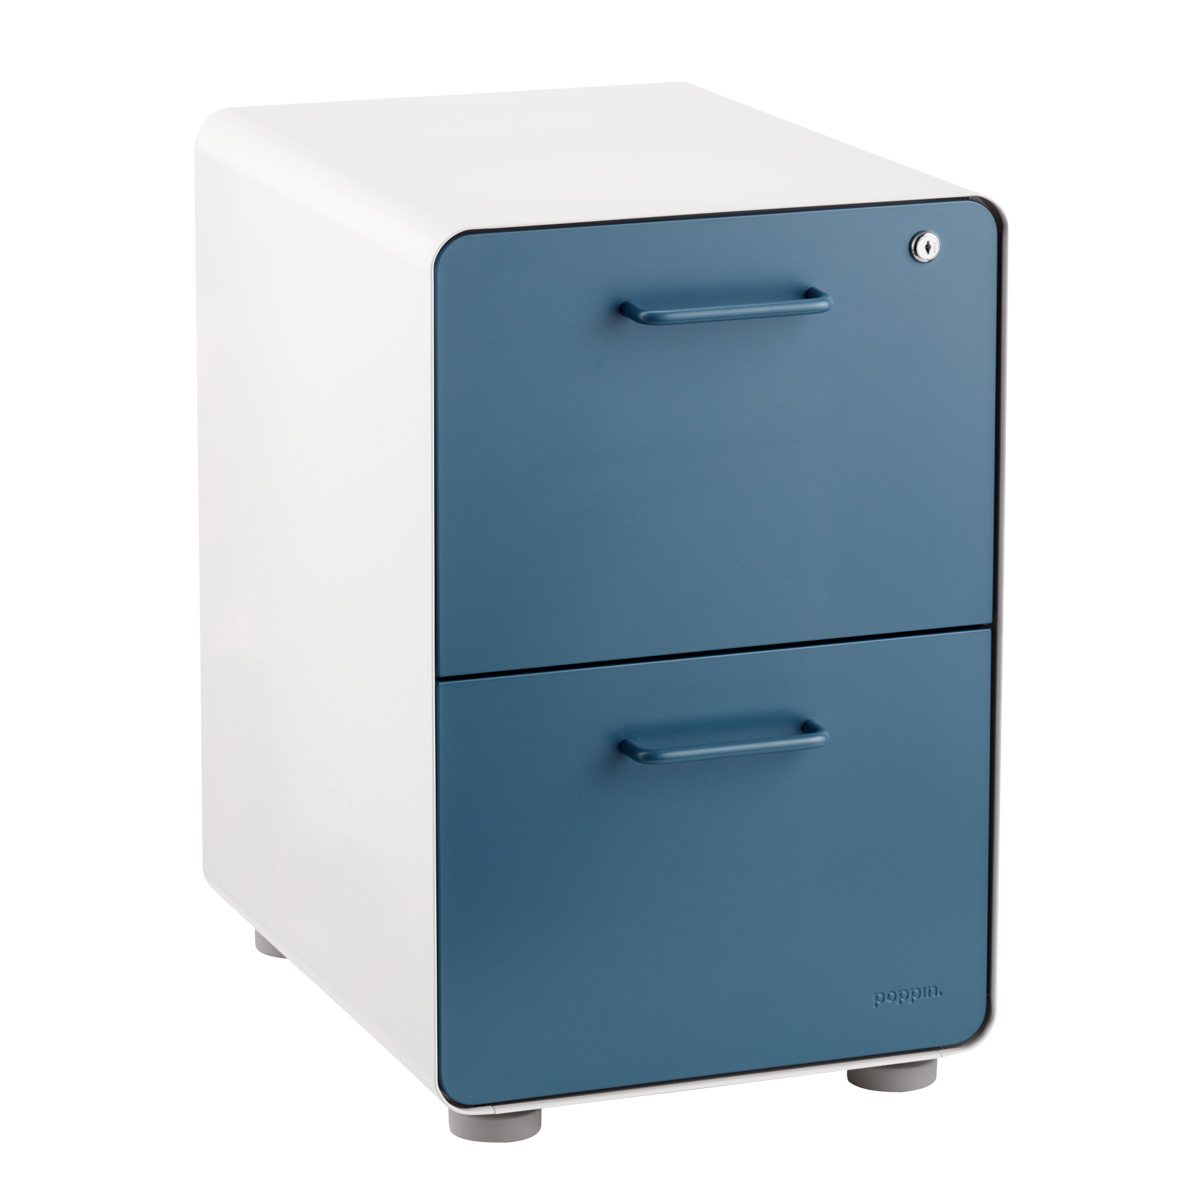 Poppin Slate Blue 2 Drawer Locking Stow Filing Cabinet | The Container Store